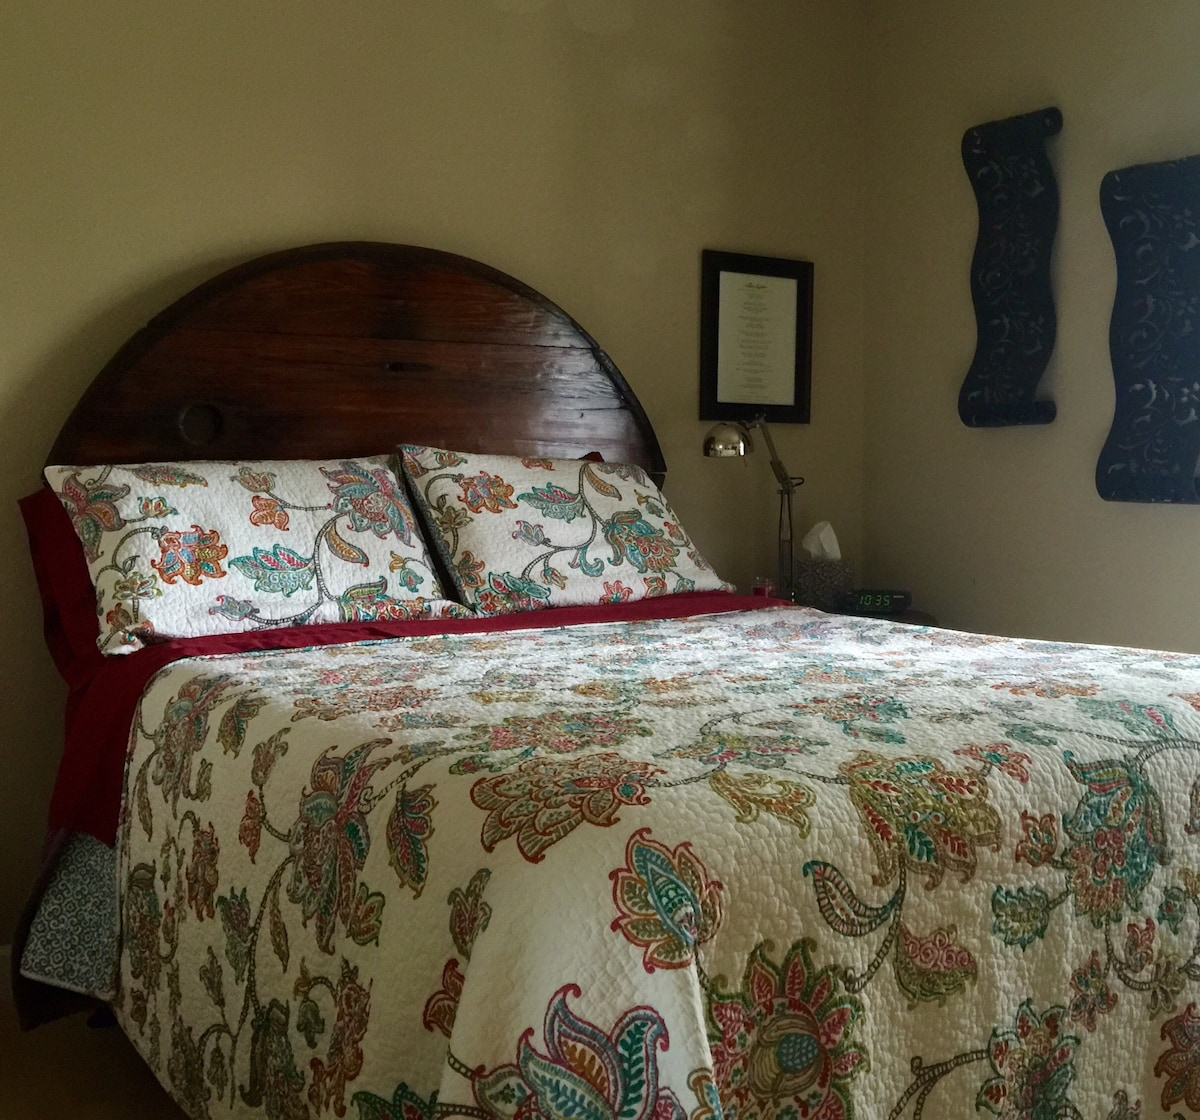 Your room has a full sized memory foam mattress. The headboard was hand crafted from refurbished solid redwood. The planks were the bottoms of fermentation tanks first used in 1940s.